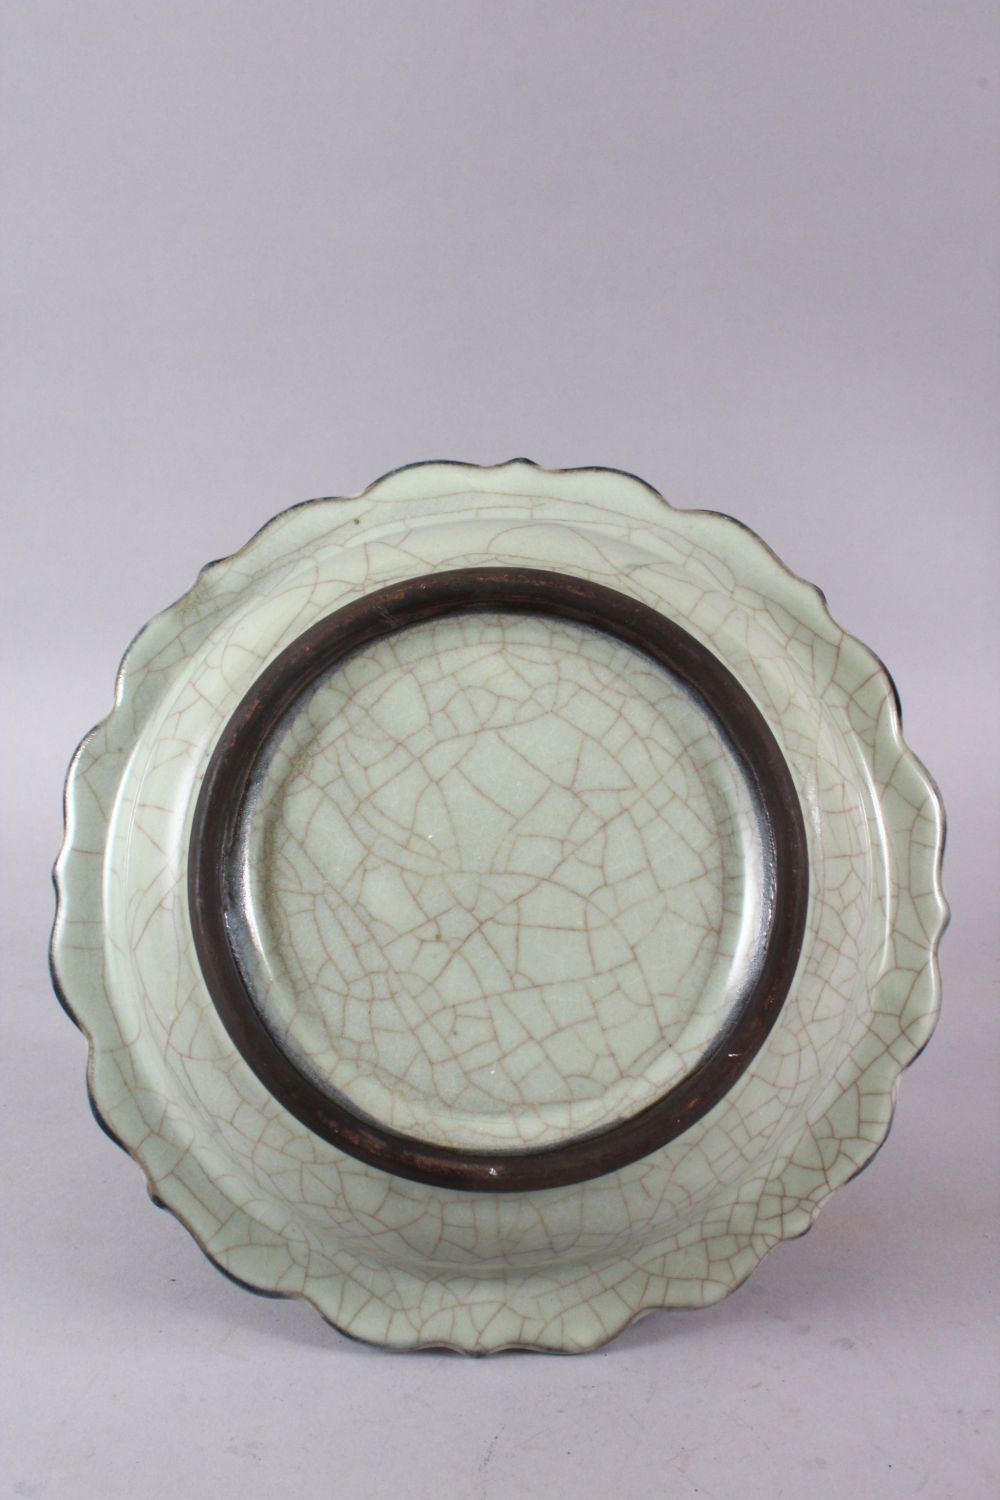 A CHINESE BARBED RIM GUAN GLAZED POTTERY DISH, the flared rim with ironwire style body decoration, - Image 3 of 3